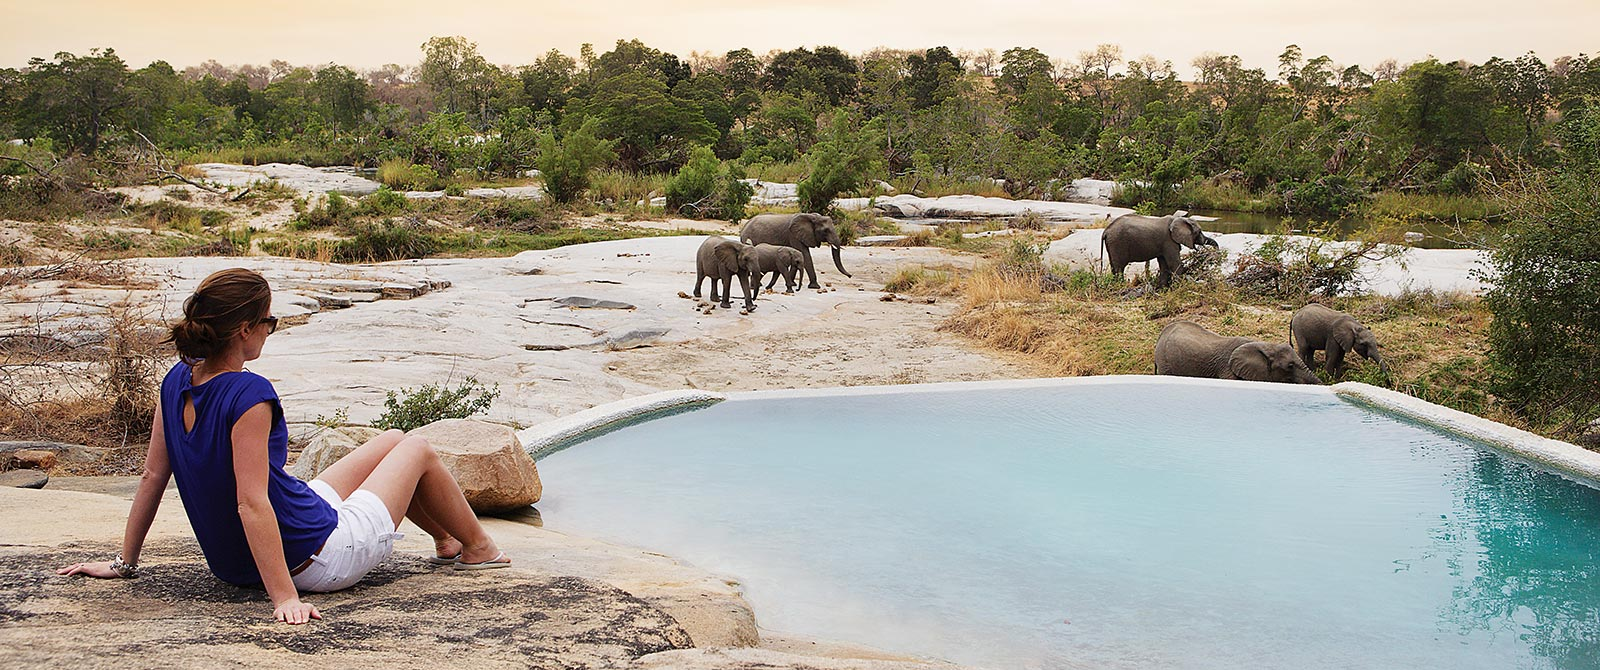 Elephants at the Pool, Londolozi Private Granite Suites, Sabi Sand - Cape Town Explorer and Family Safari Adventure